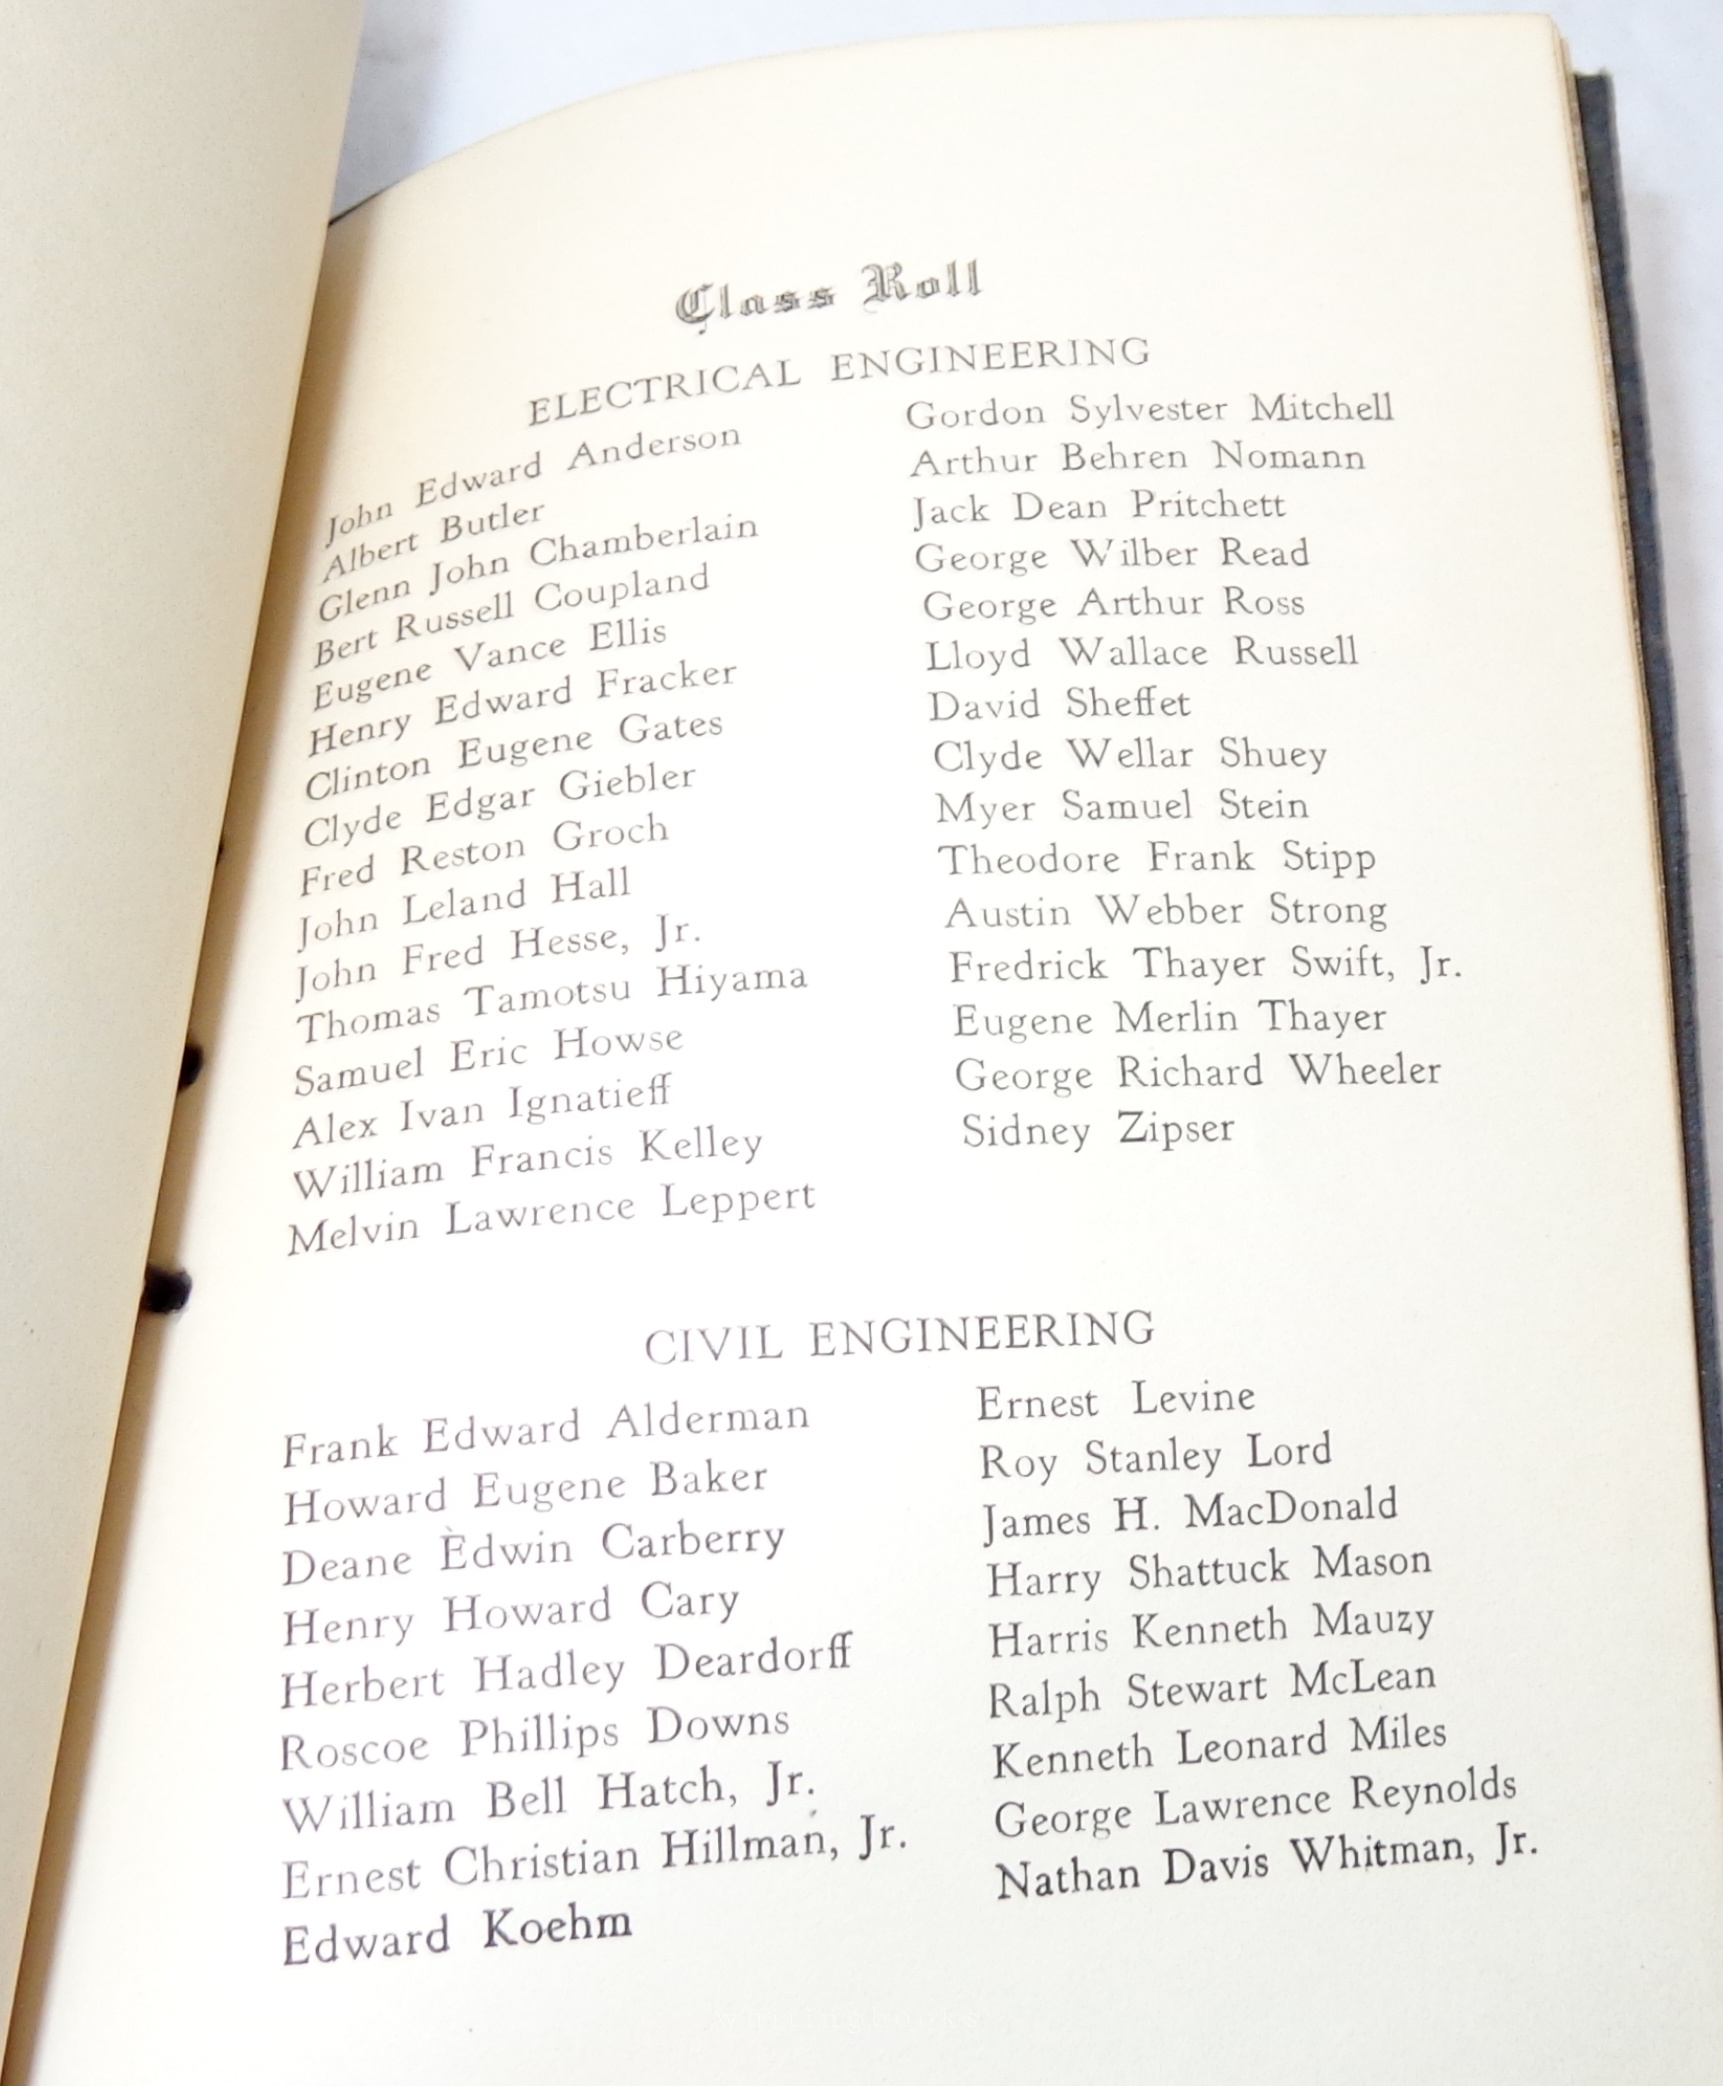 California Institute of Technology (Cal Tech) 1930 Commencement Program